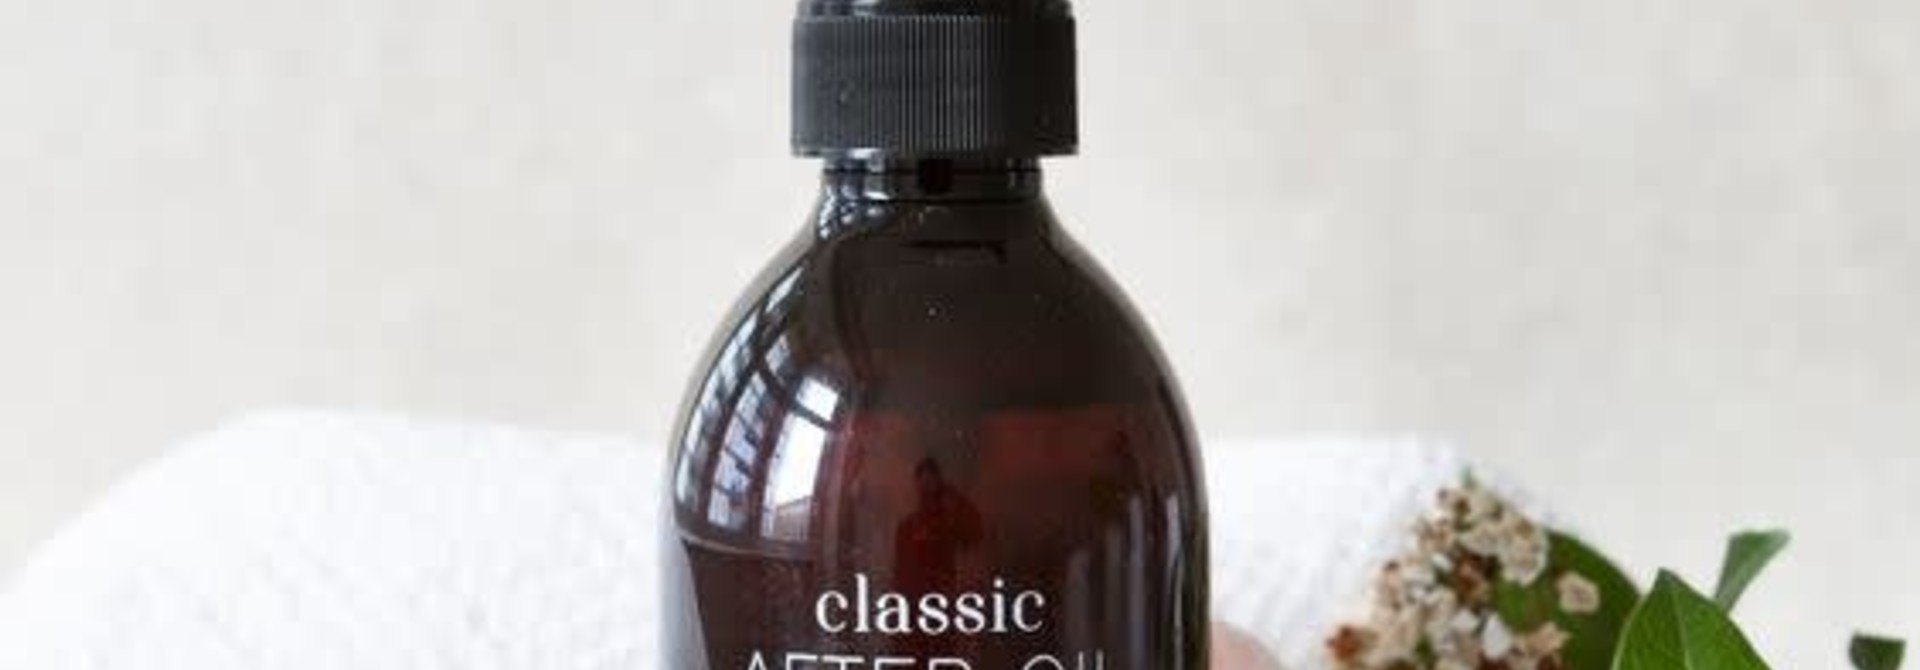 Classic - After Oil